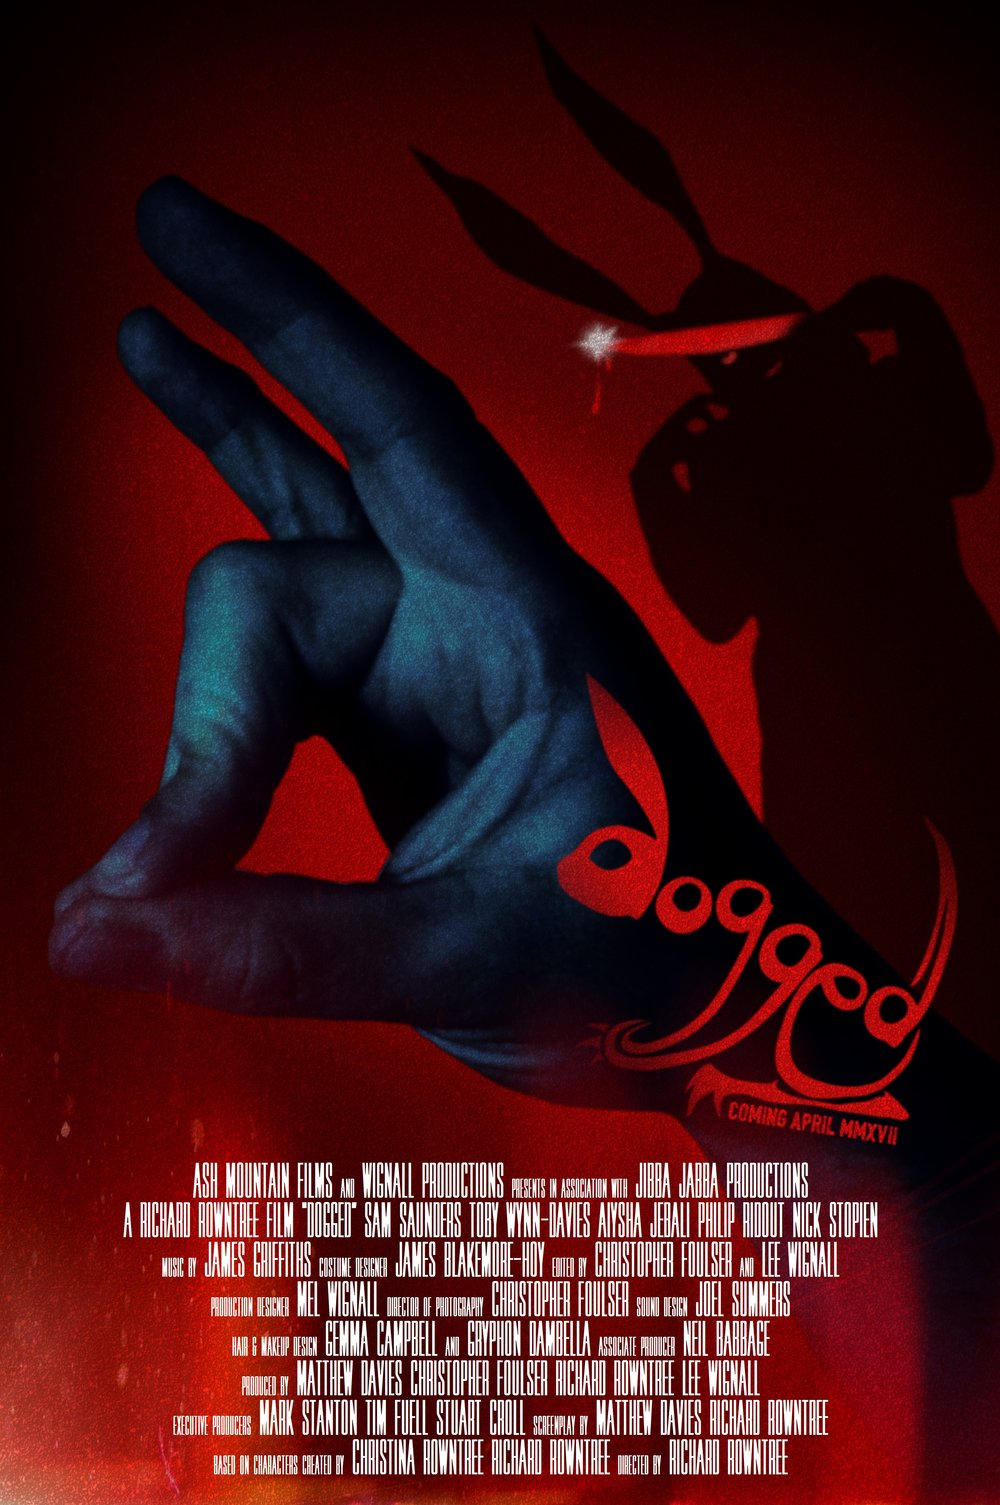 """Dogged"" is a dark psychological thriller in the folk-horror sub-genre and was financed entirely through the crowdfunding platform Kickstarter.""When Sam returns home to the small tidal island where he grew up, he soon discovers that the rural community there harbour more than just a few secrets. As he tries to uncover the truth behind a young girl's mysterious death, he's lured into a dangerous cat-and-mouse game with a sinister group of masked maniacs who will stop at nothing to protect their identities, and hide the horrifying truth about the island."""